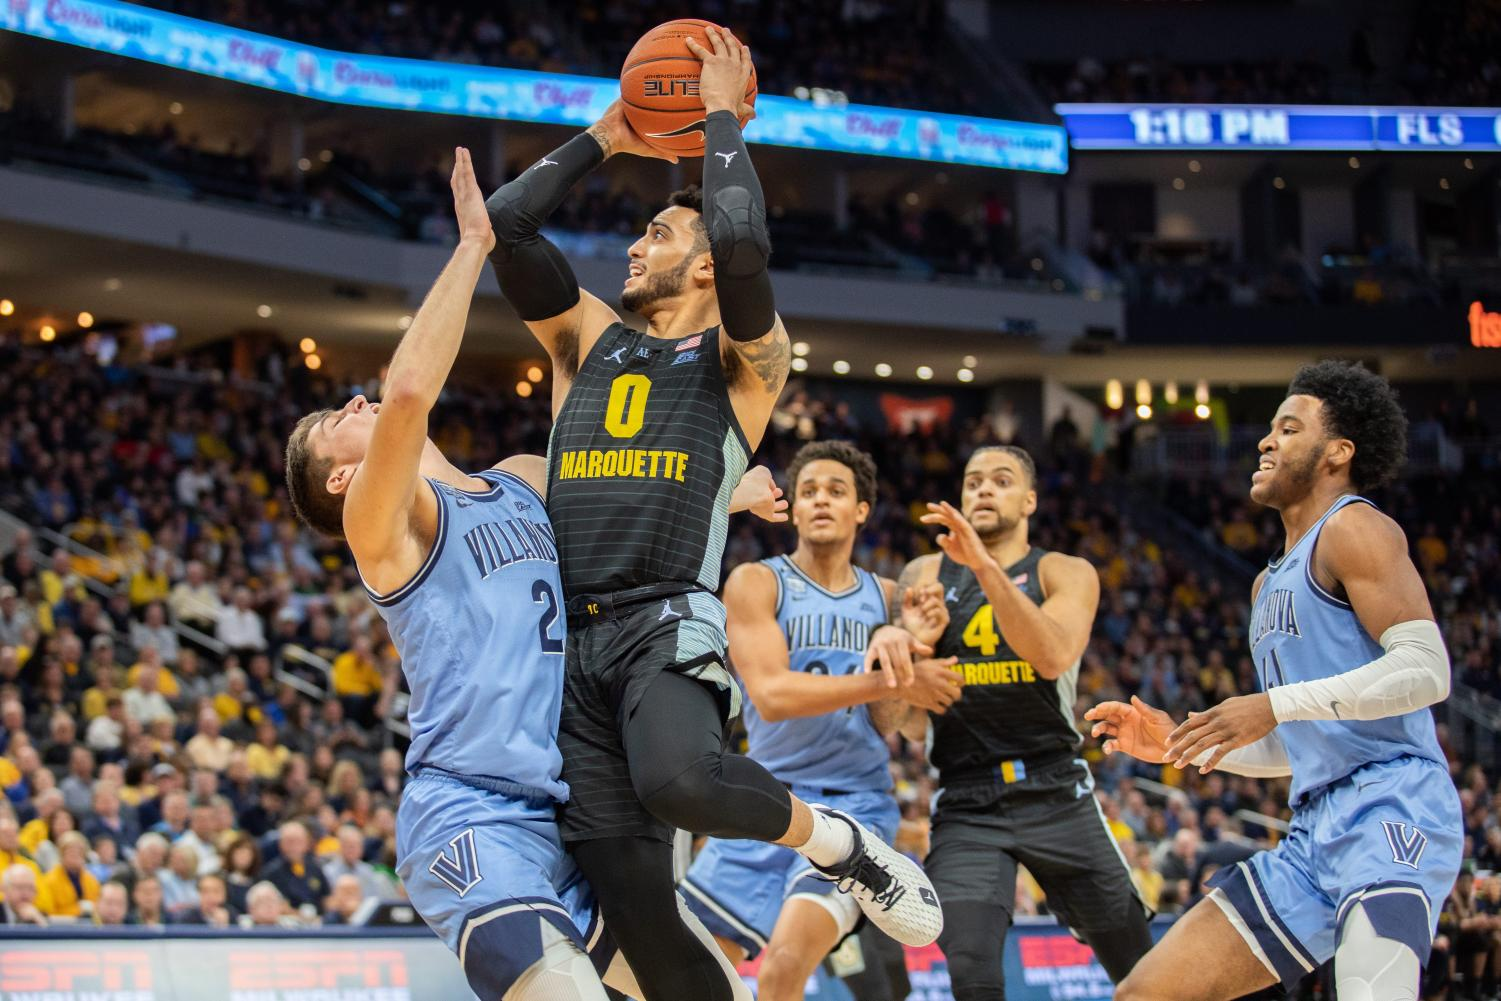 Markus Howard (0) recorded a game-high 29 points and season-high eight rebounds Saturday afternoon in Marquette's victory over No. 10 Villanova.